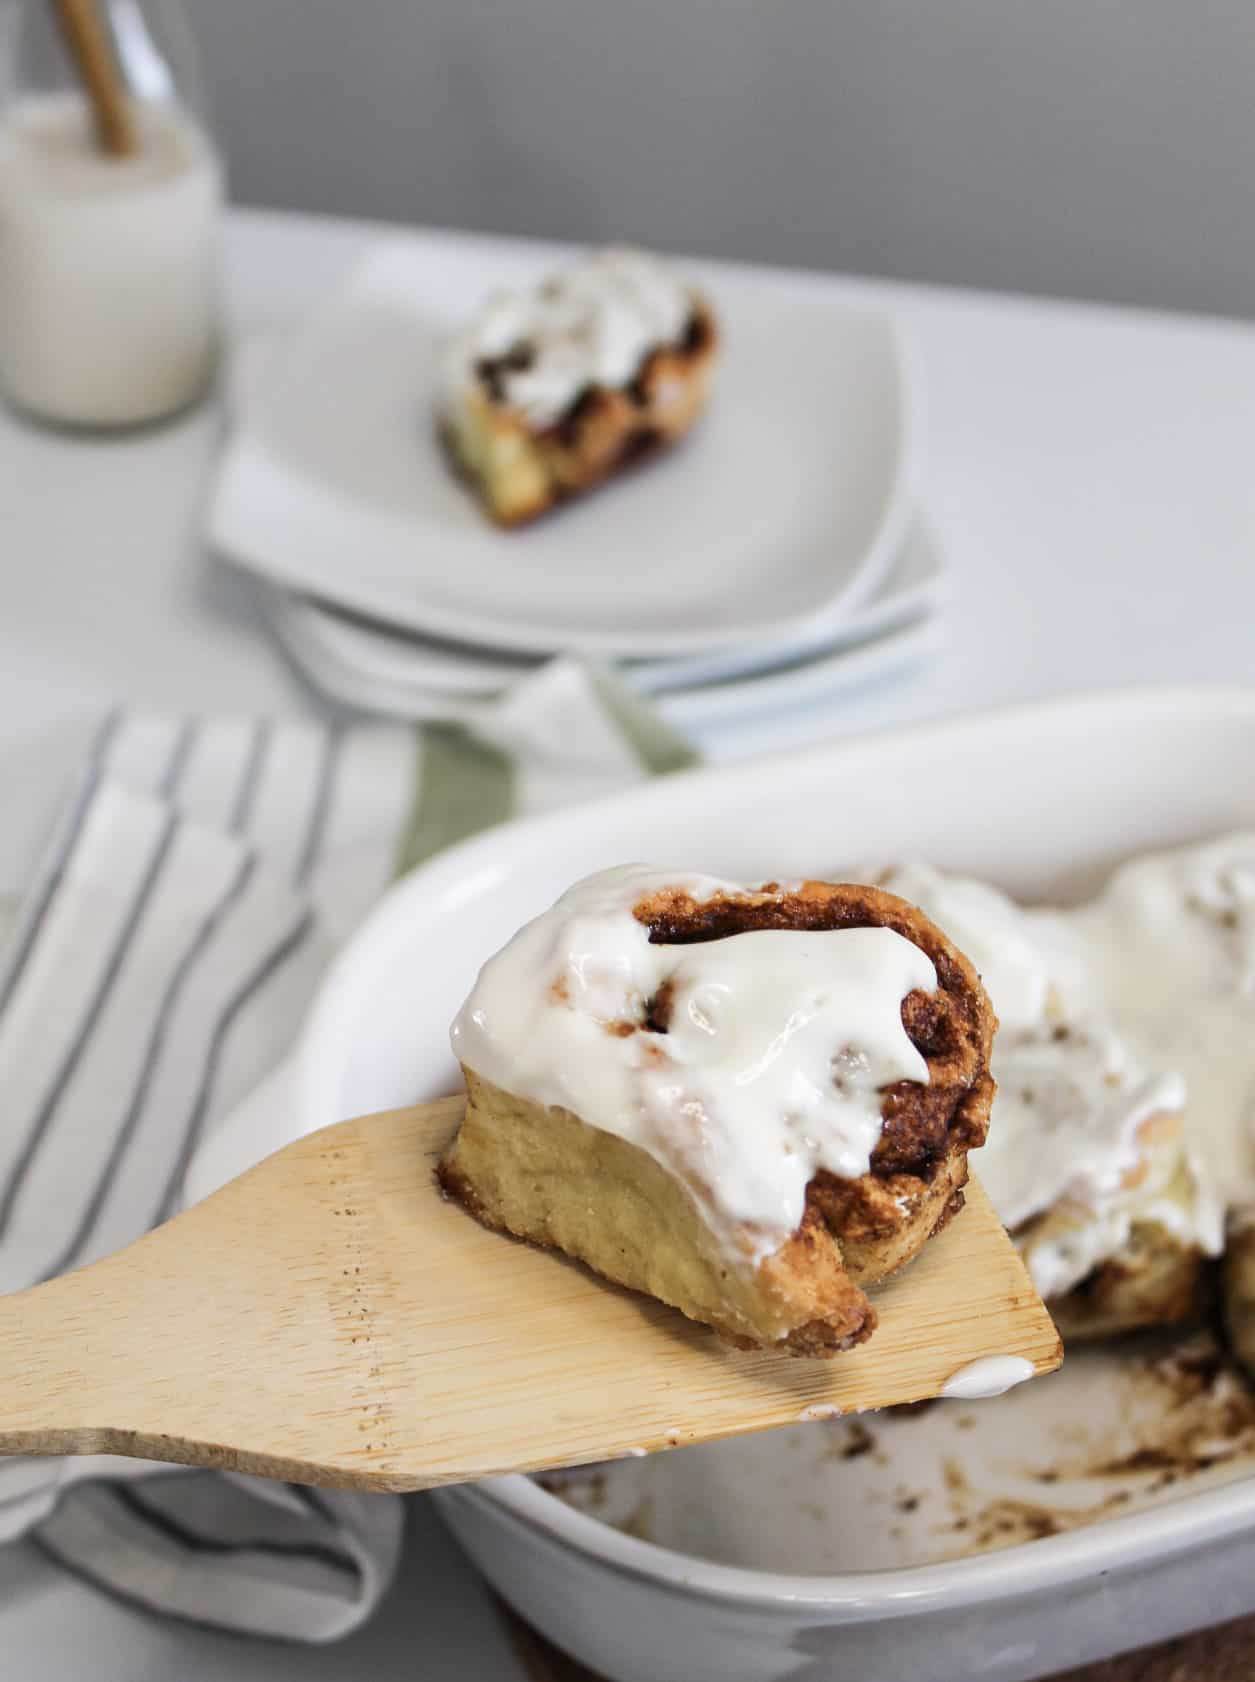 Take Your Easter Brunch Up A Notch With These 5 Recipes!